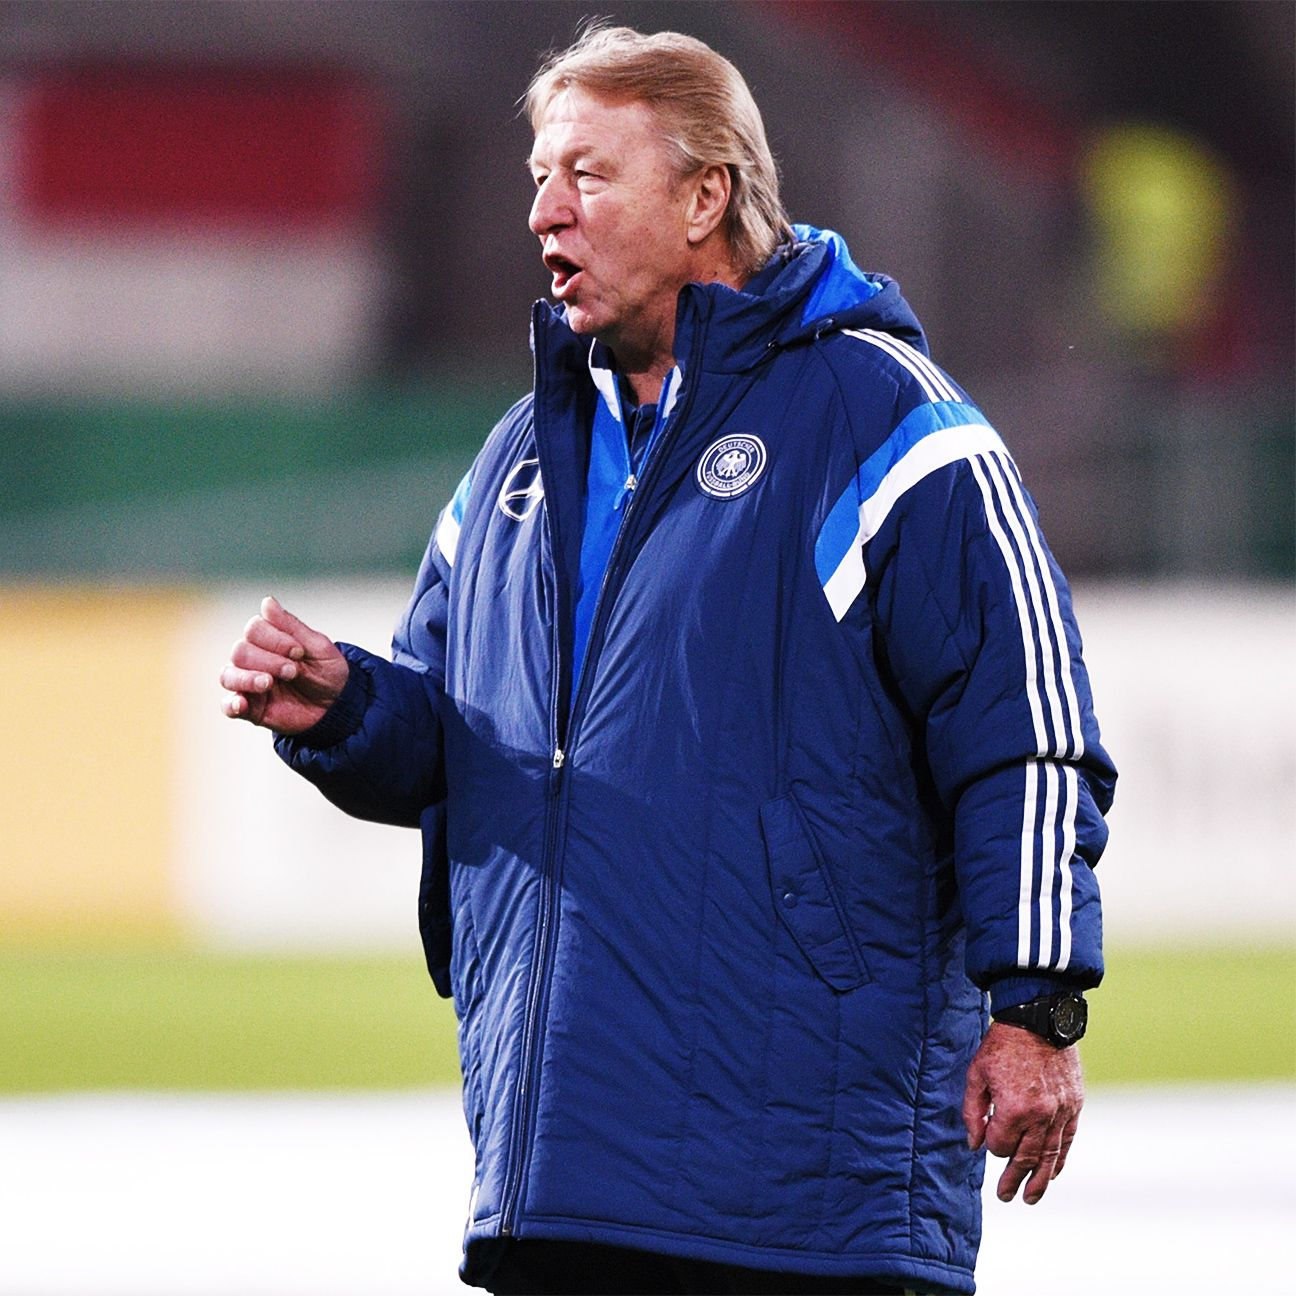 Germany Under-21 head coach Horst Hrubesch can expect to count on a full squad this summer in the Czech Republic at the Euro Under-21 Championships.